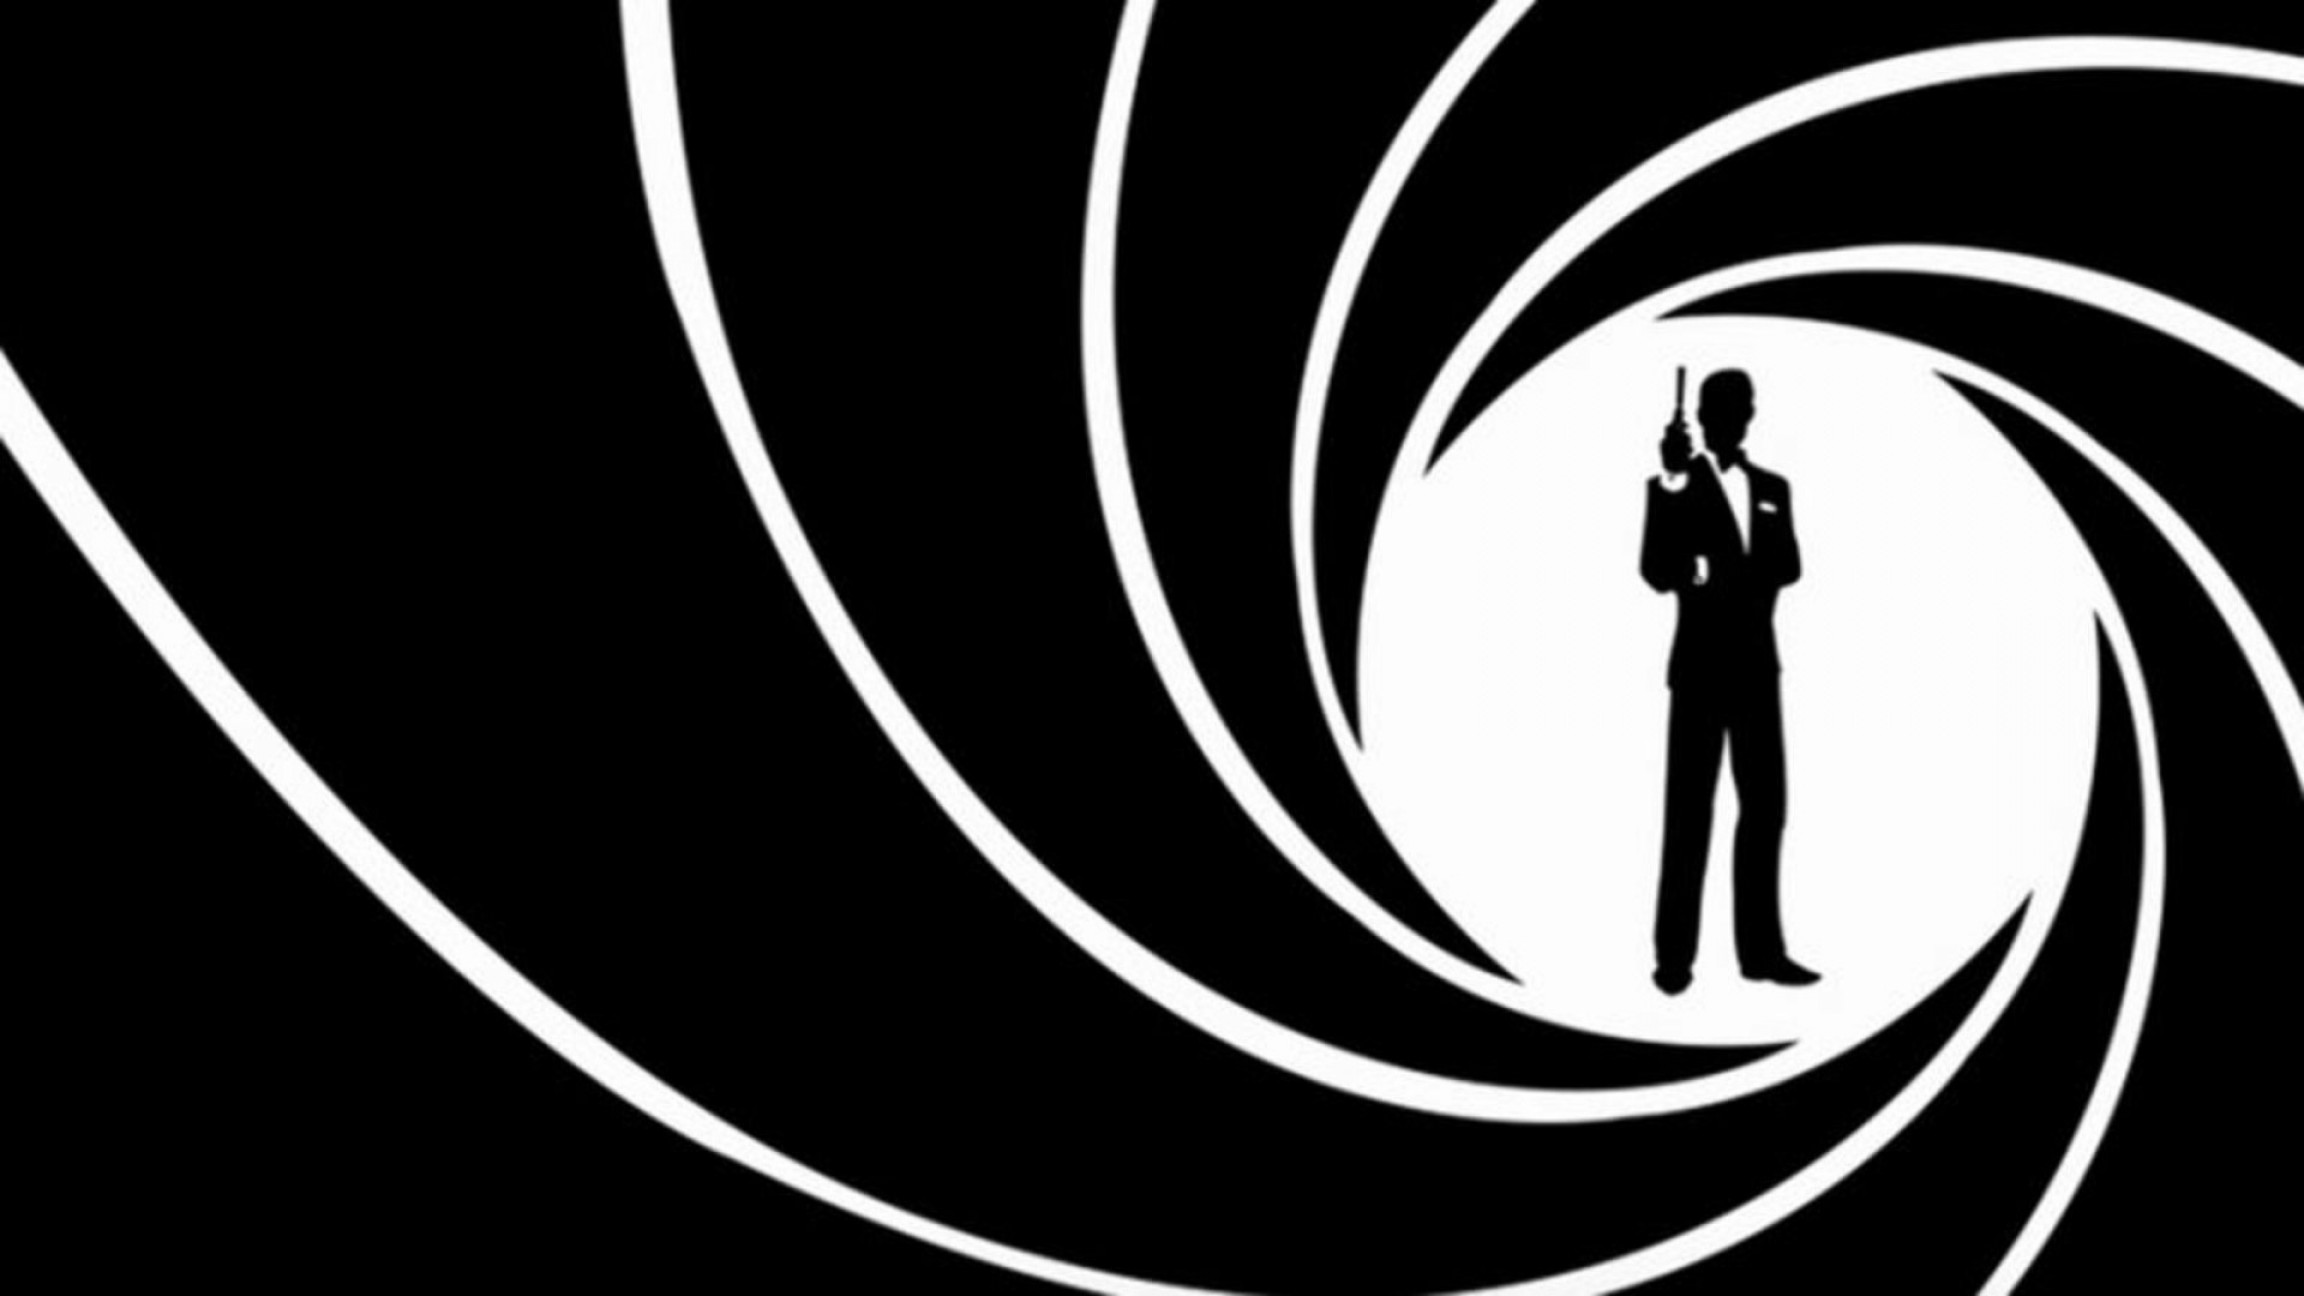 James Bond Silhouette Vector: The Best James Bond Theme Songs